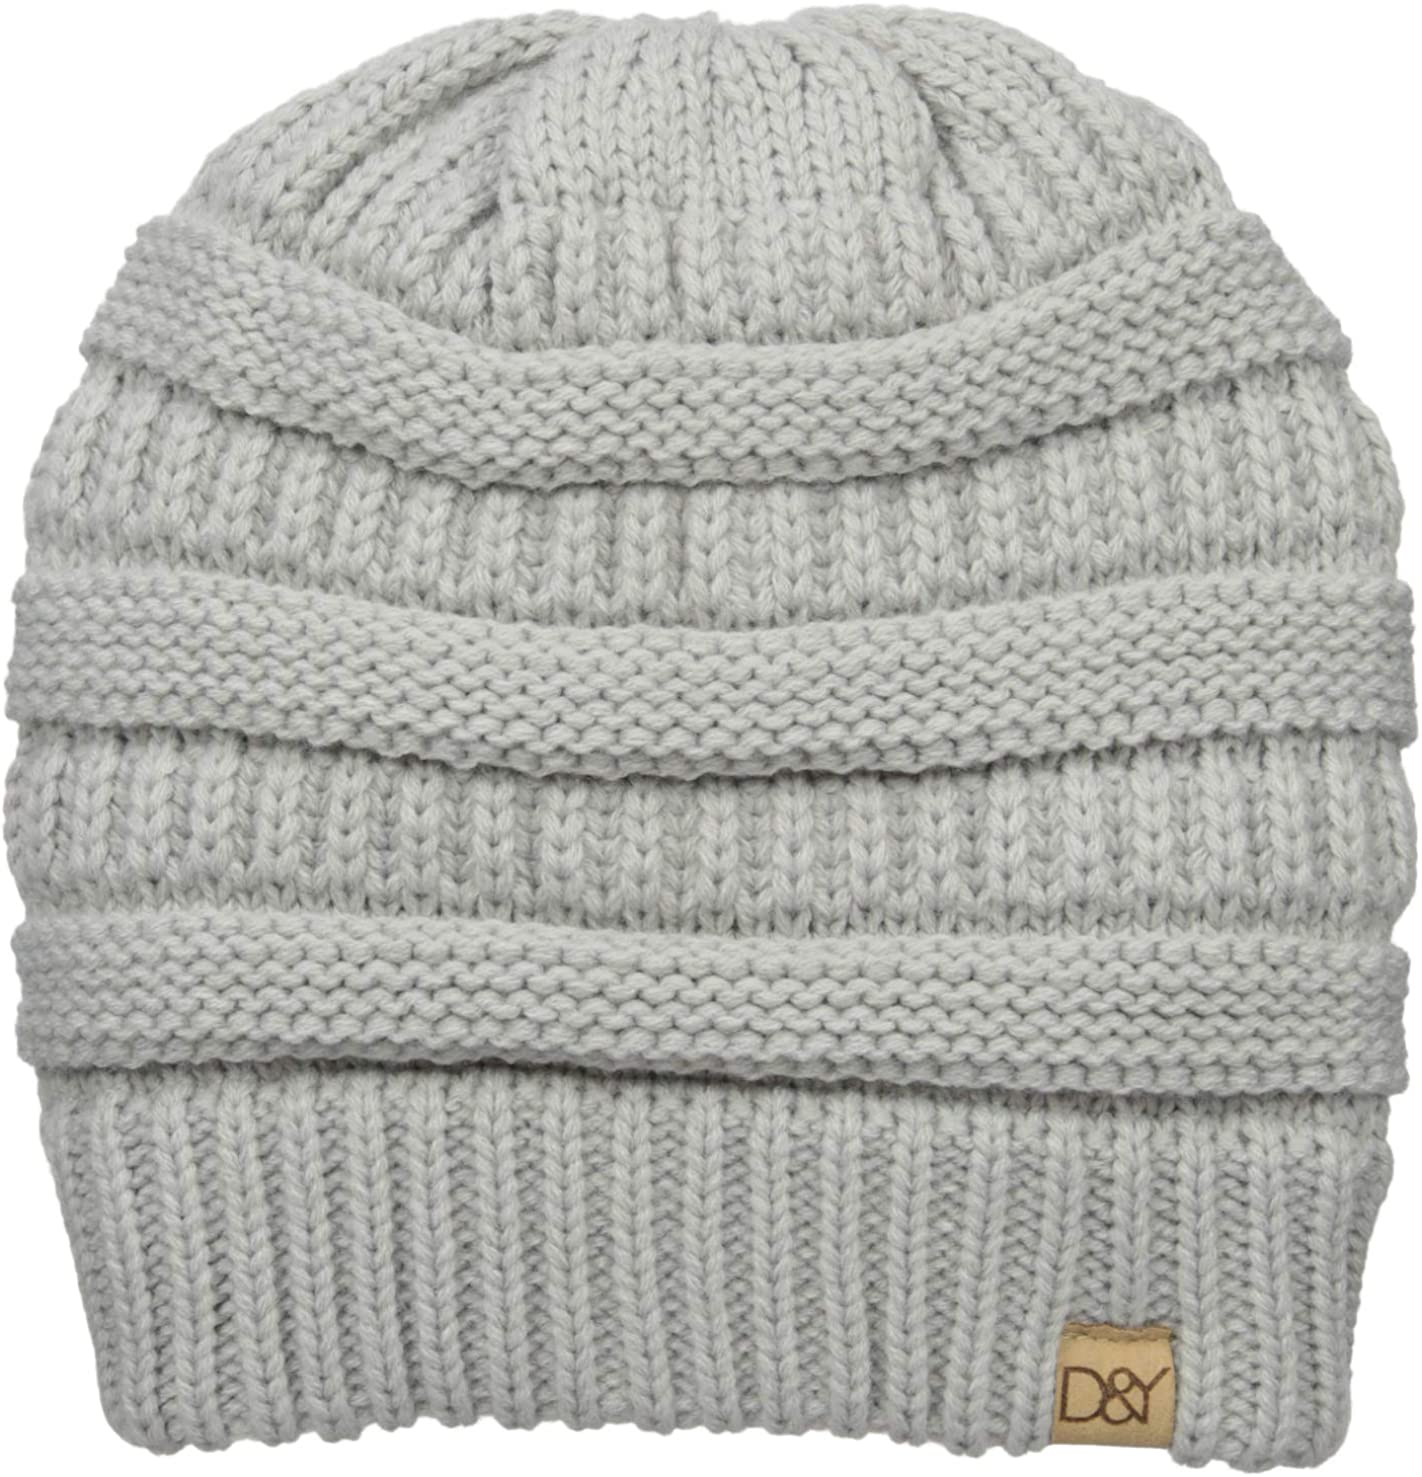 D&Y Women's David & Young's Solid Slinky Beanie